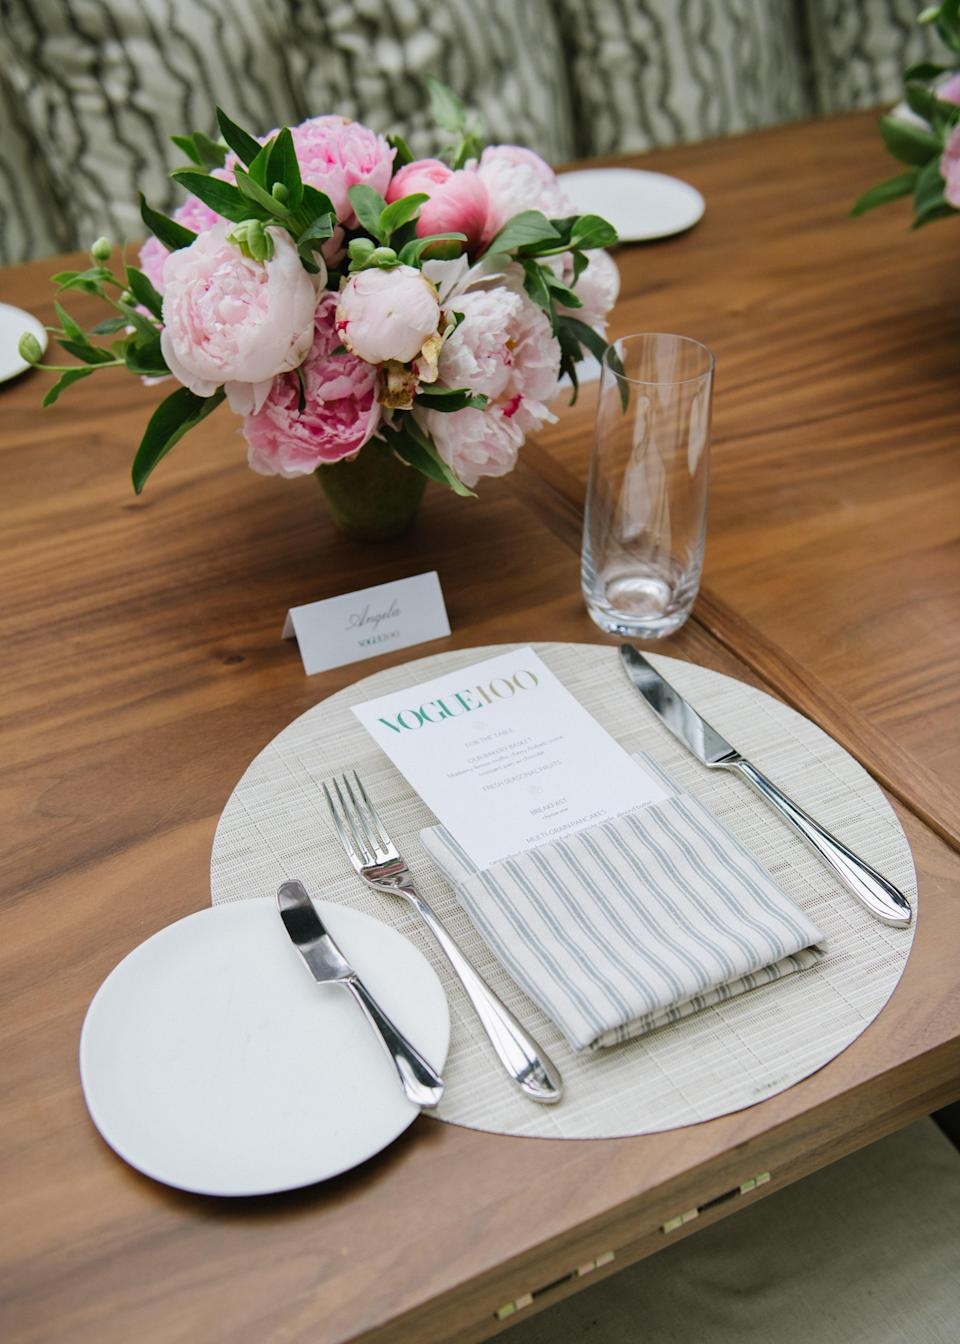 The effortless chic place settings paired with pink peonies by Raúl Avila.